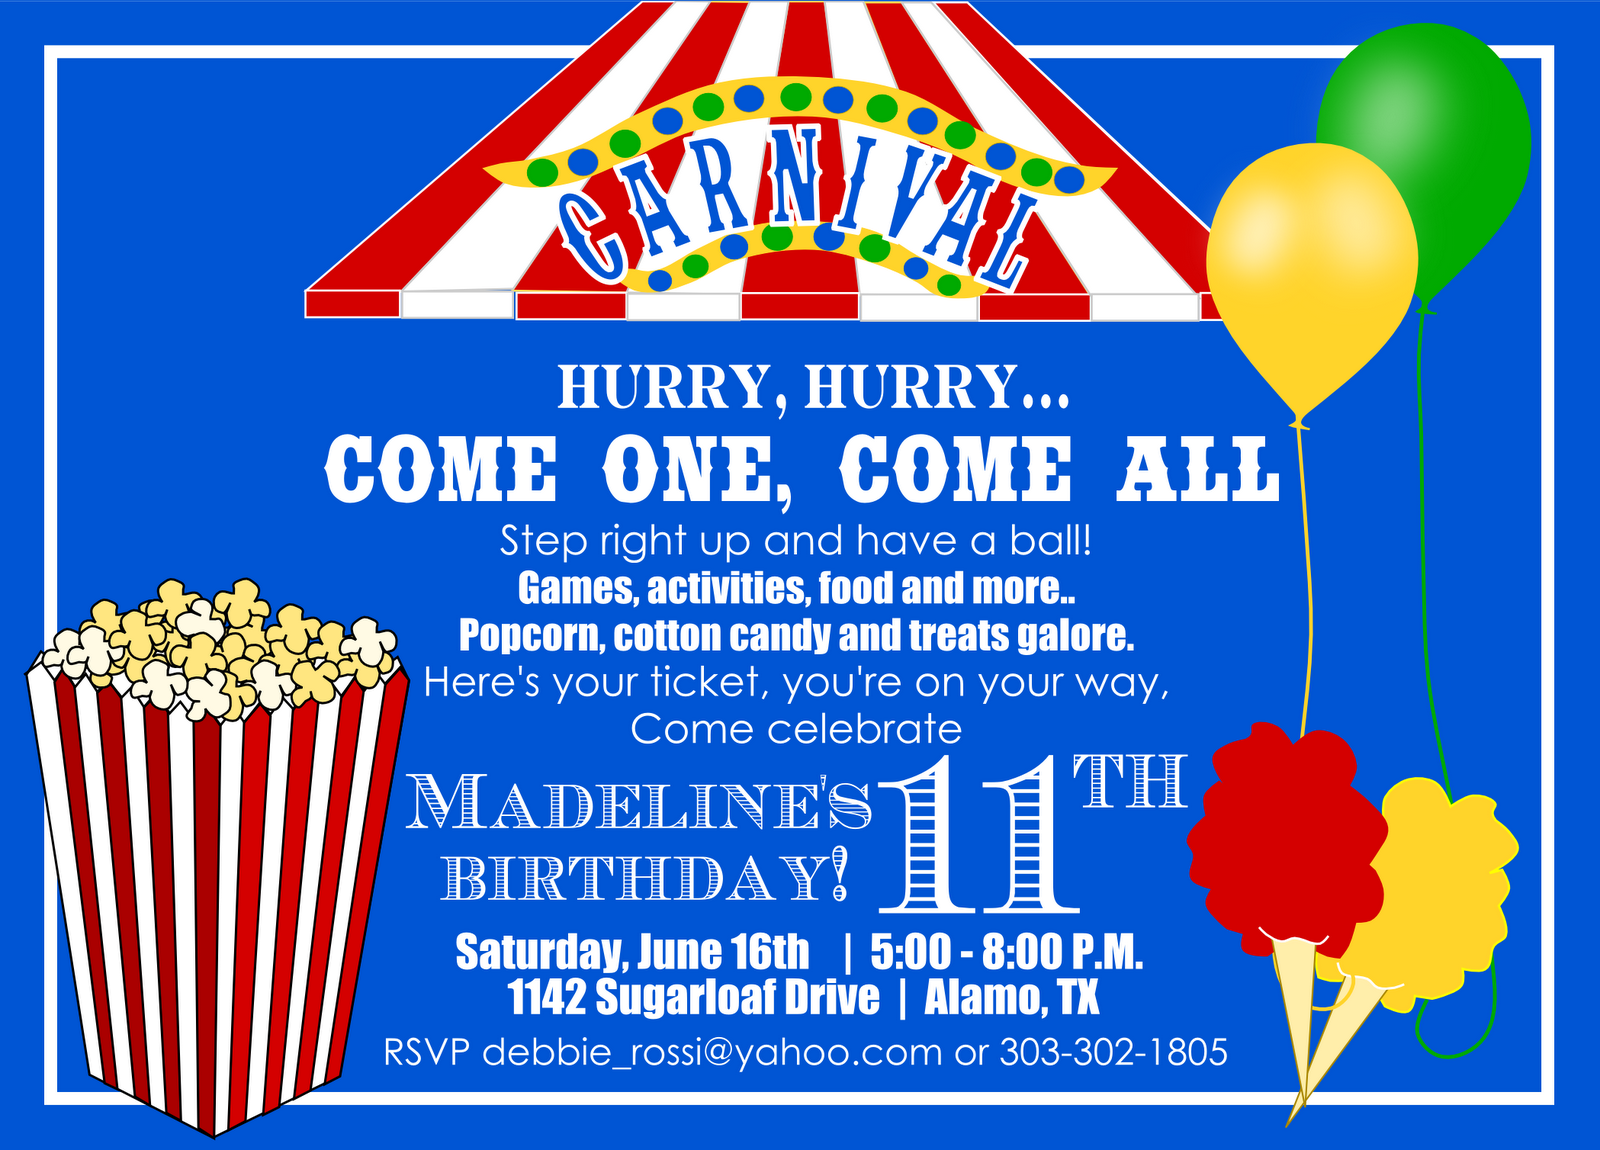 Carnival birthday invitation and ticket for Debbie